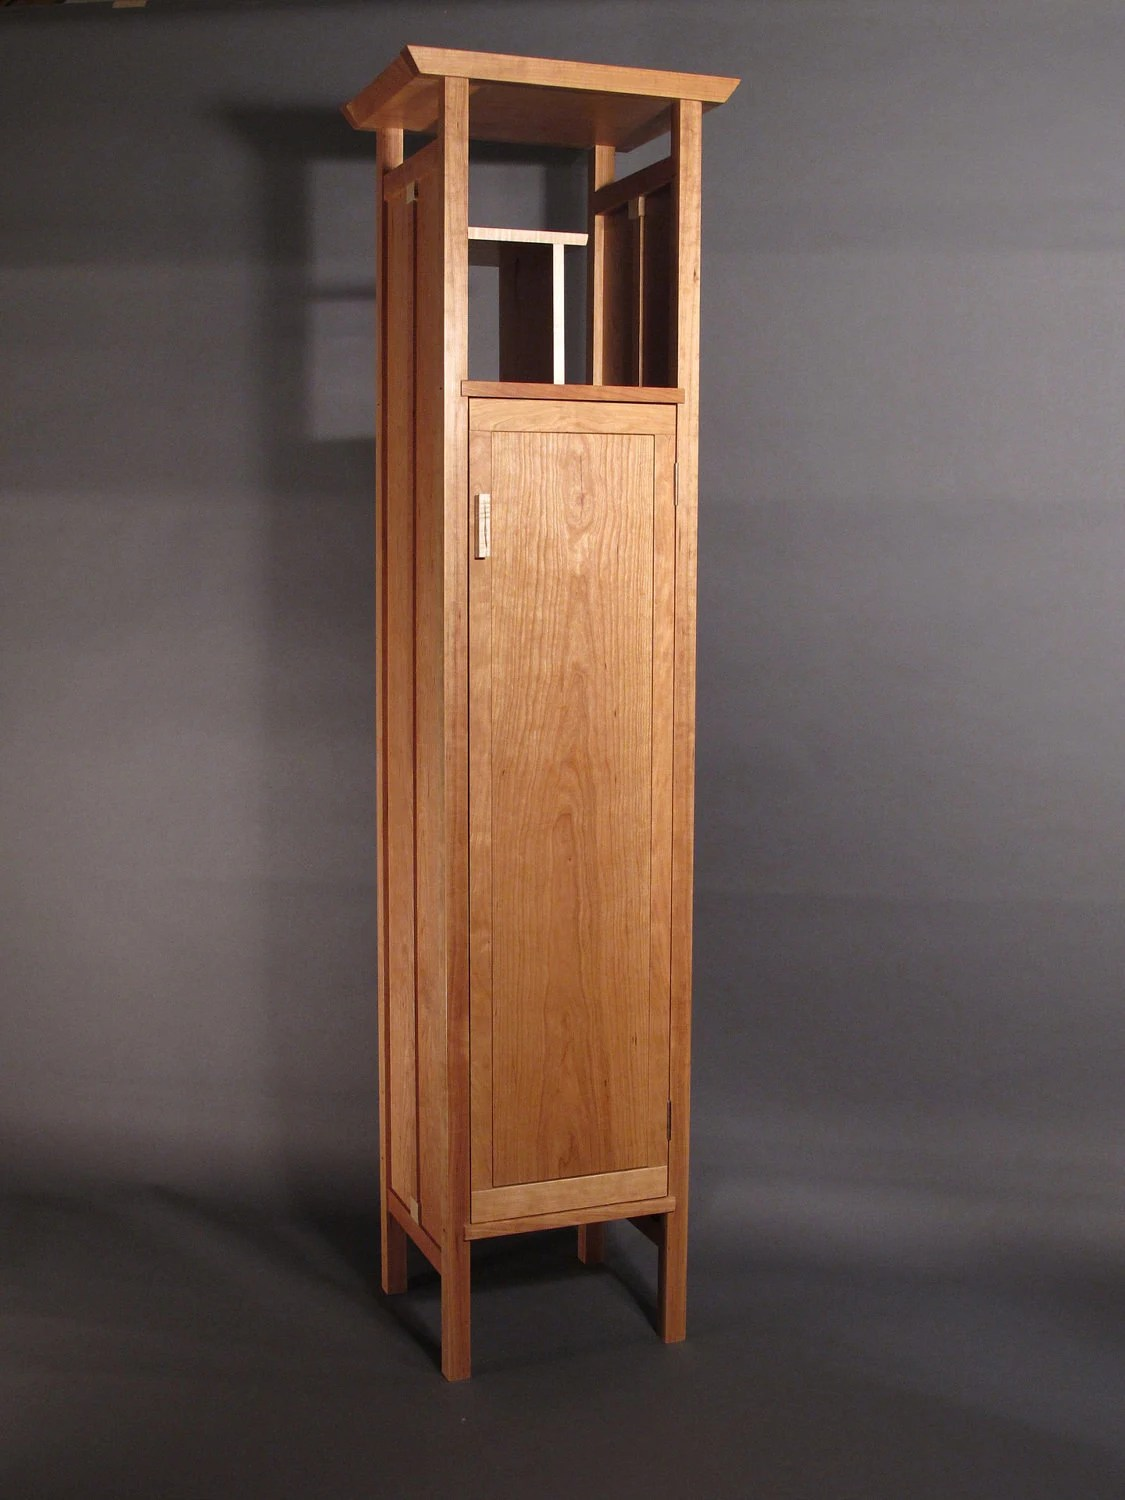 Cabinet Oak Furniture Tall Narrow Armoire Cabinet In Cherry Handmade Custom Wood Furniture Entry Cabinet Linen Cabinet Bedroom Armoire Mid Century Modern